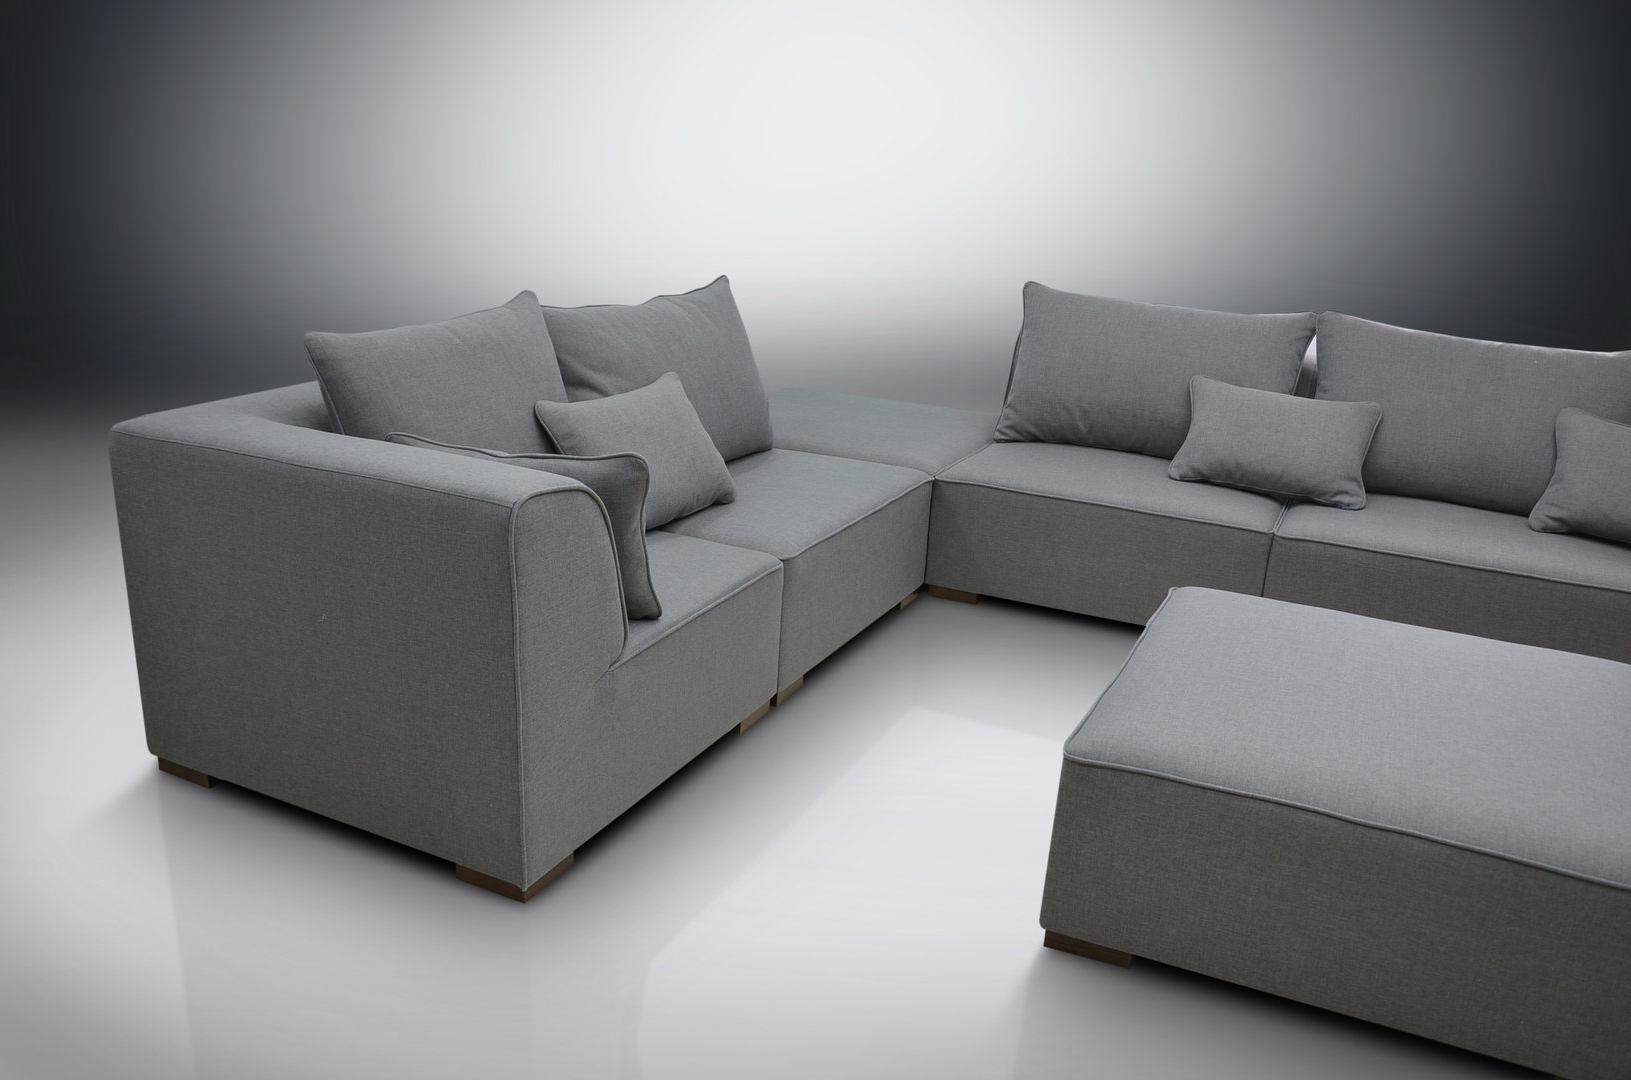 Dream Navy 3 Piece Modular Sofas Within Most Recently Released Modular Sofa Primo, 2xcorners, 3xchairs, 2xfootstools (View 12 of 20)